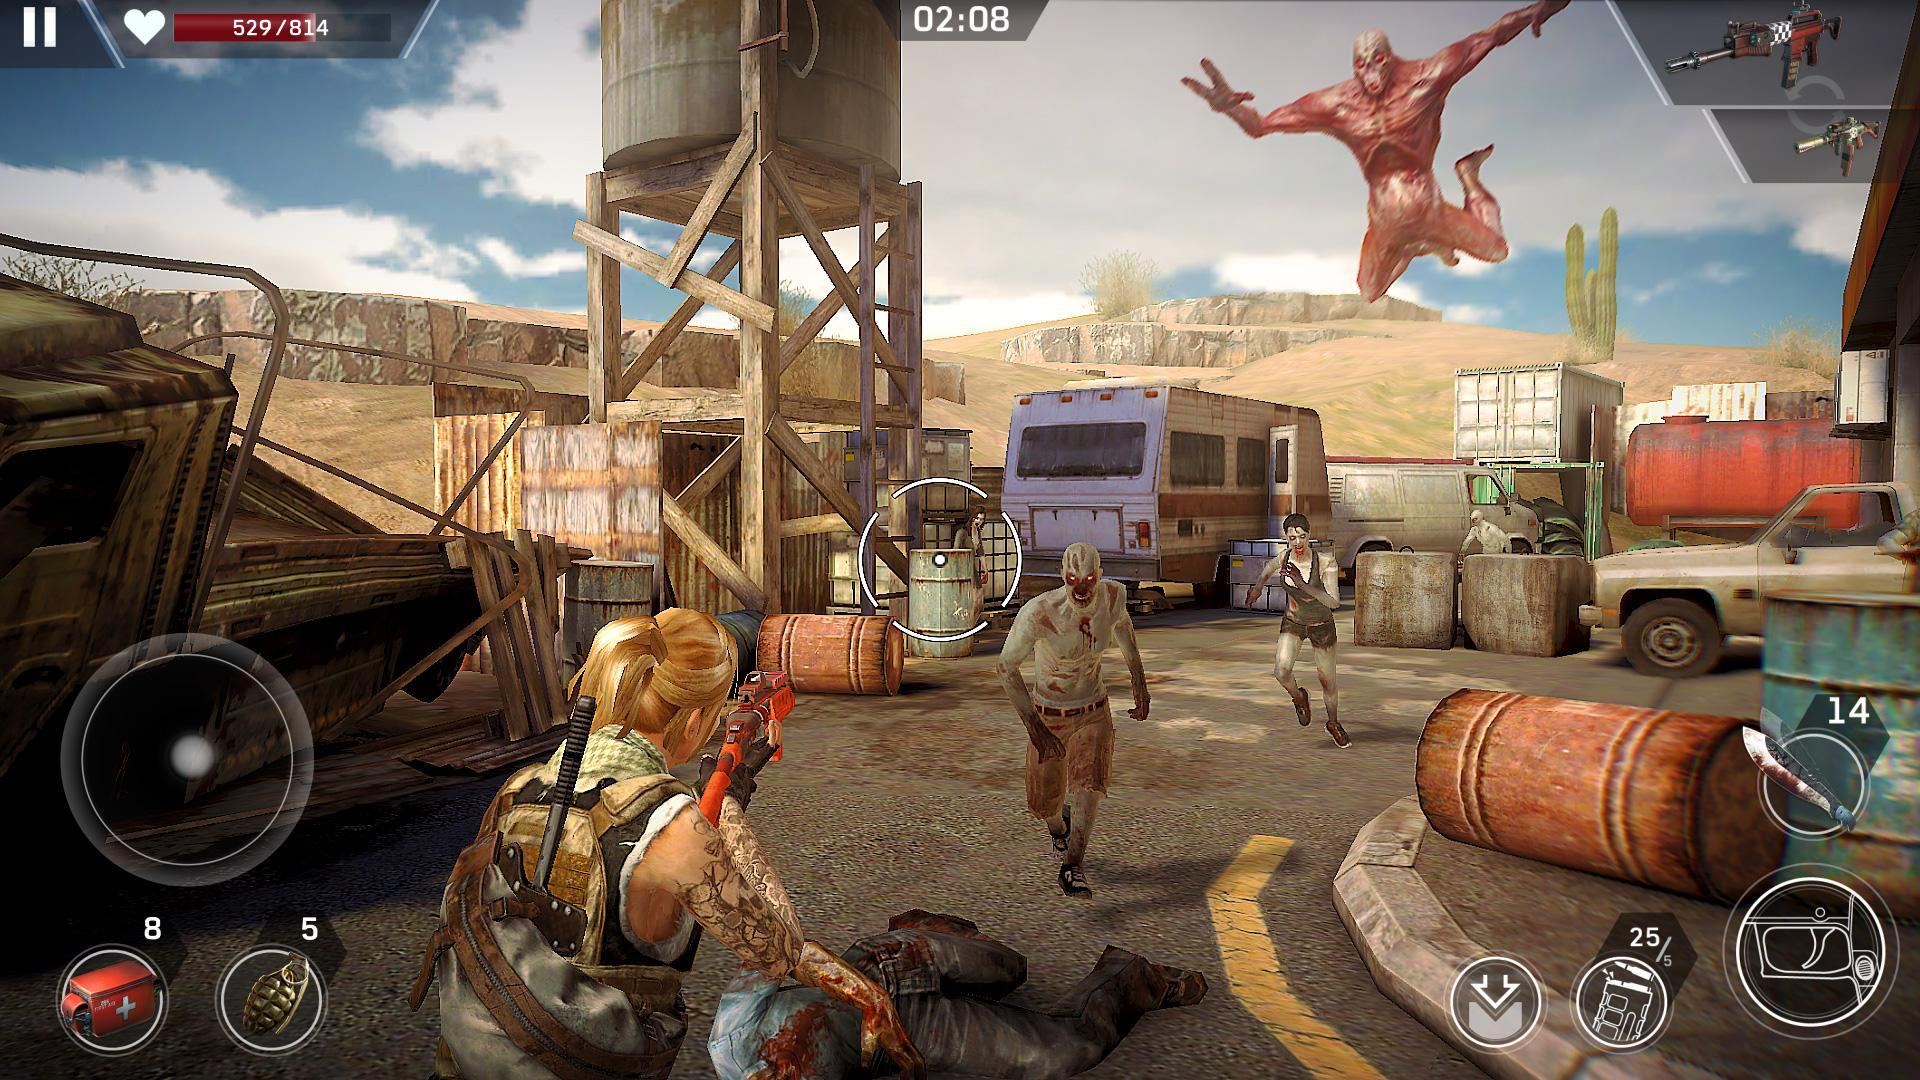 Left to Survive Zombie Survival PvP Shooter 4.2.0 Screenshot 13